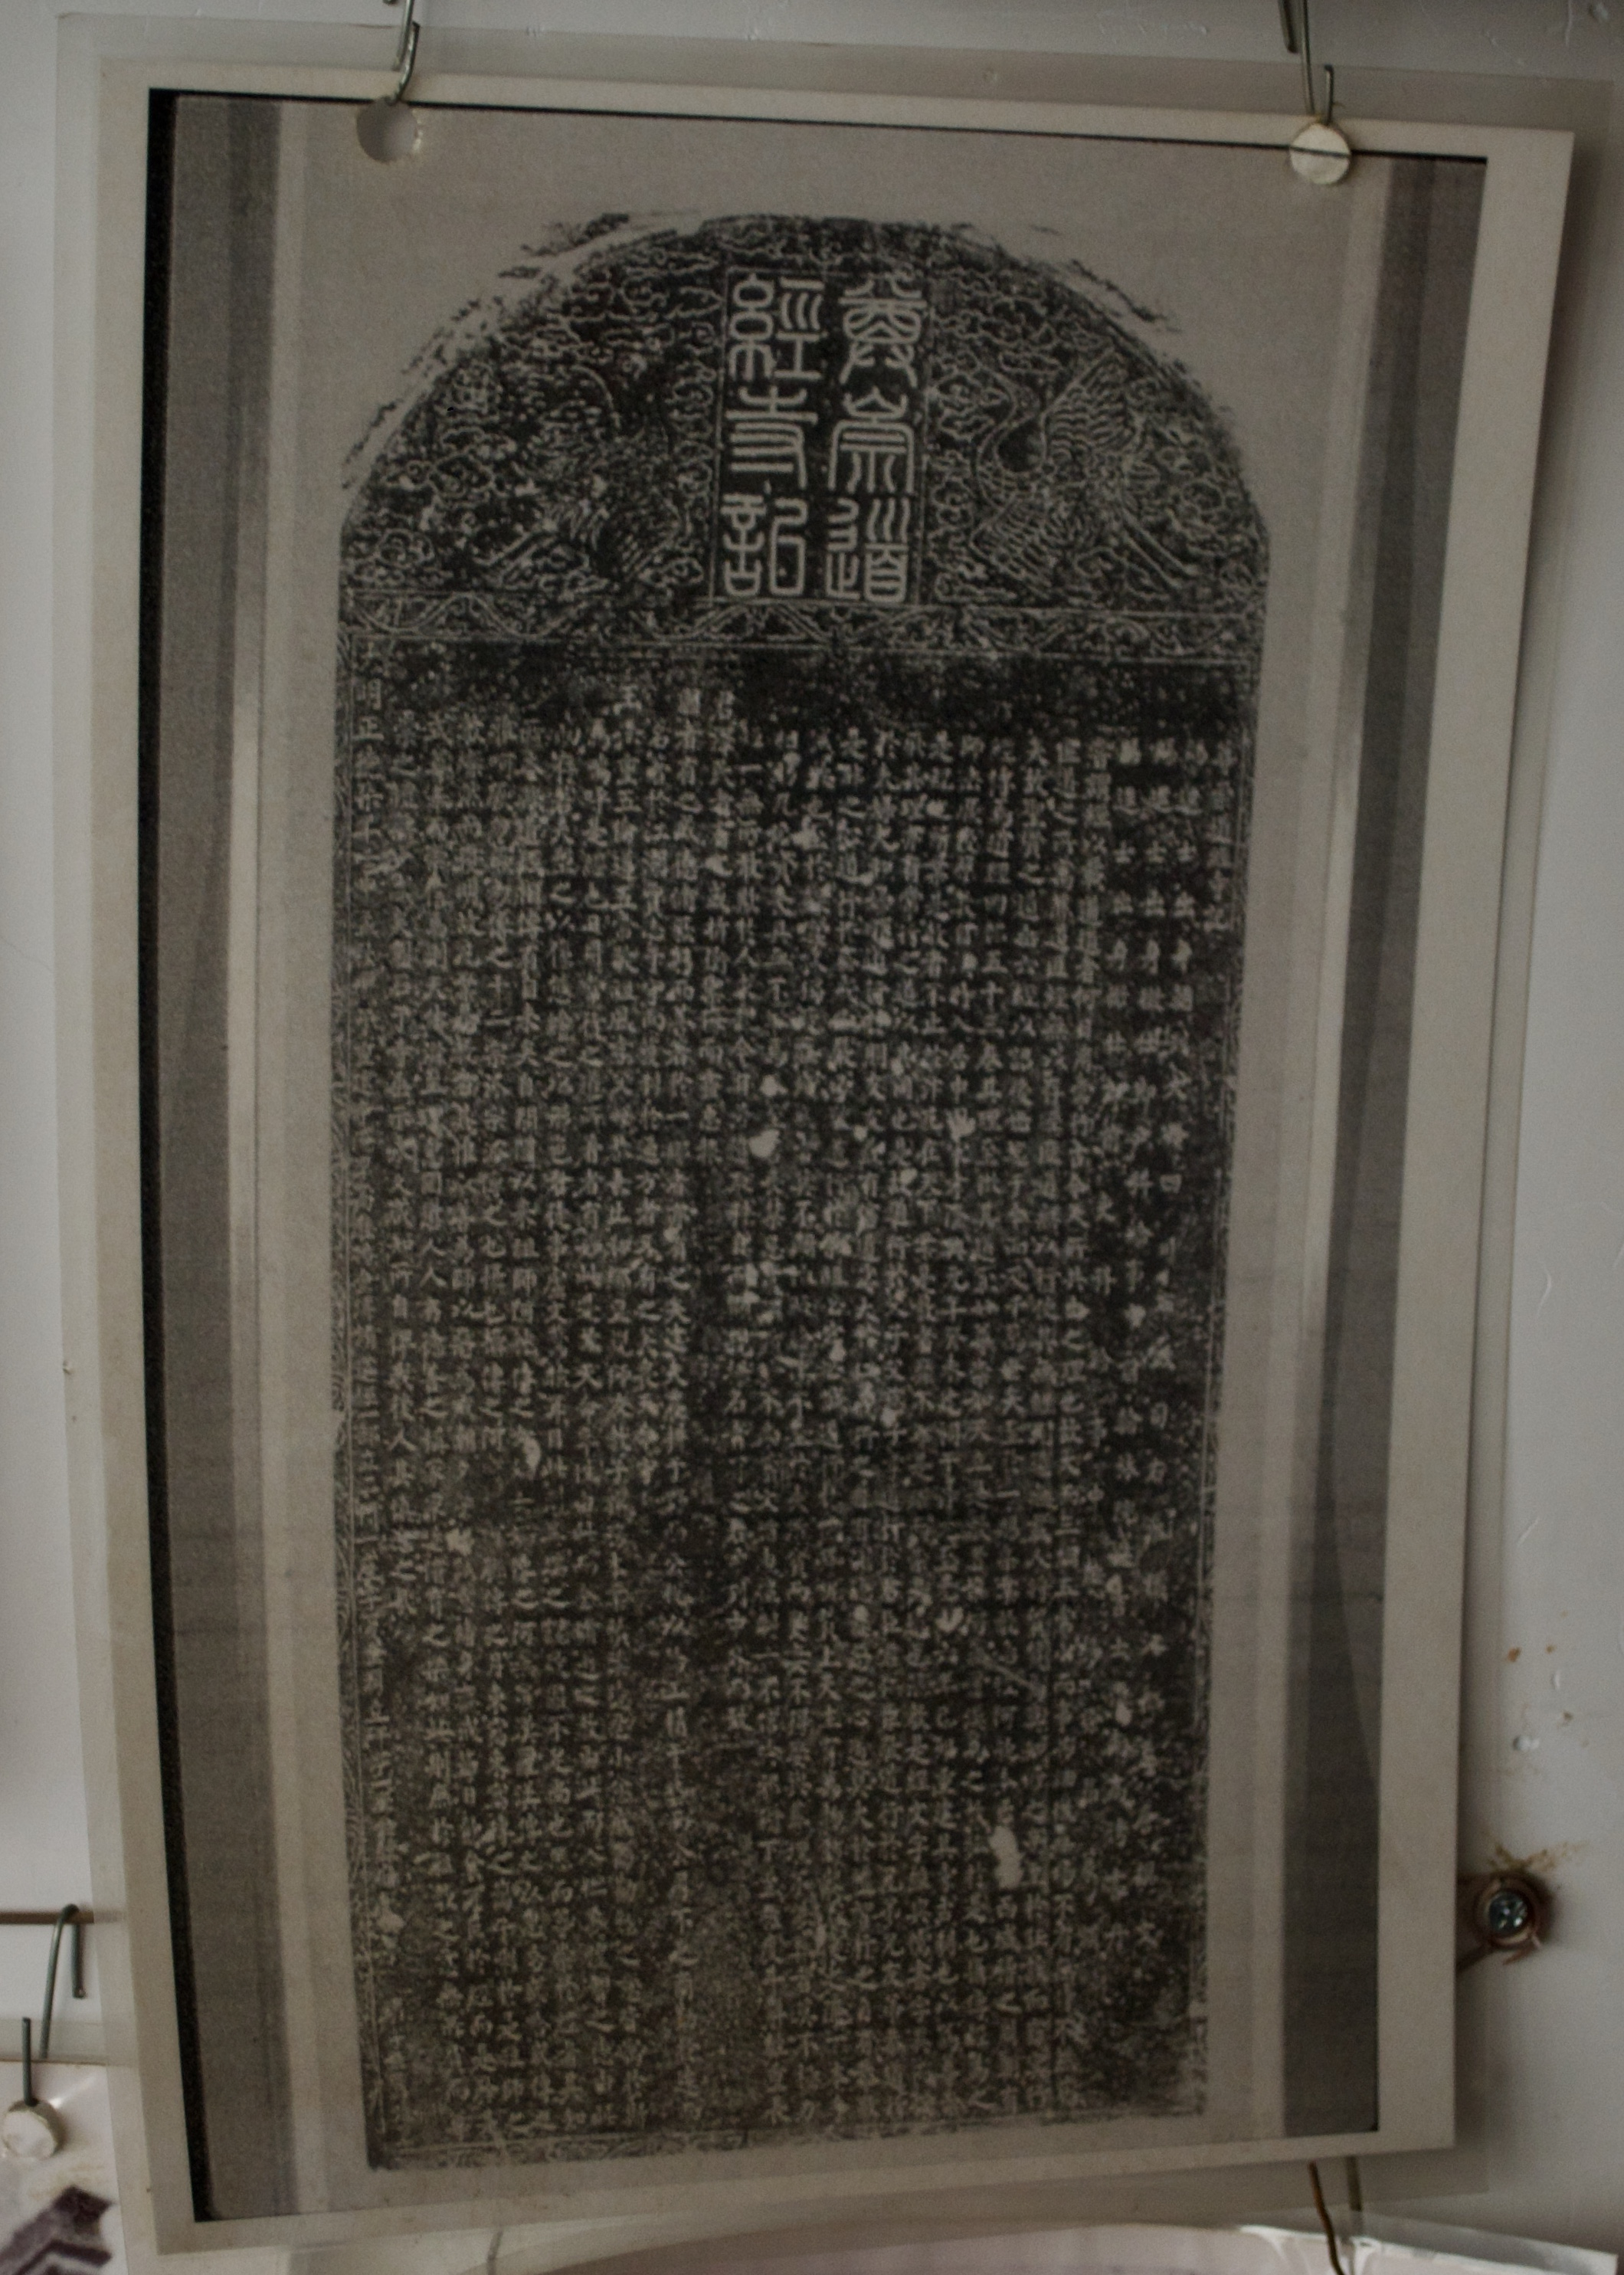 This stone tablet now resides in the Kaifeng Municipal Museum.  [Kaifeng Jewish History Memorial Center]